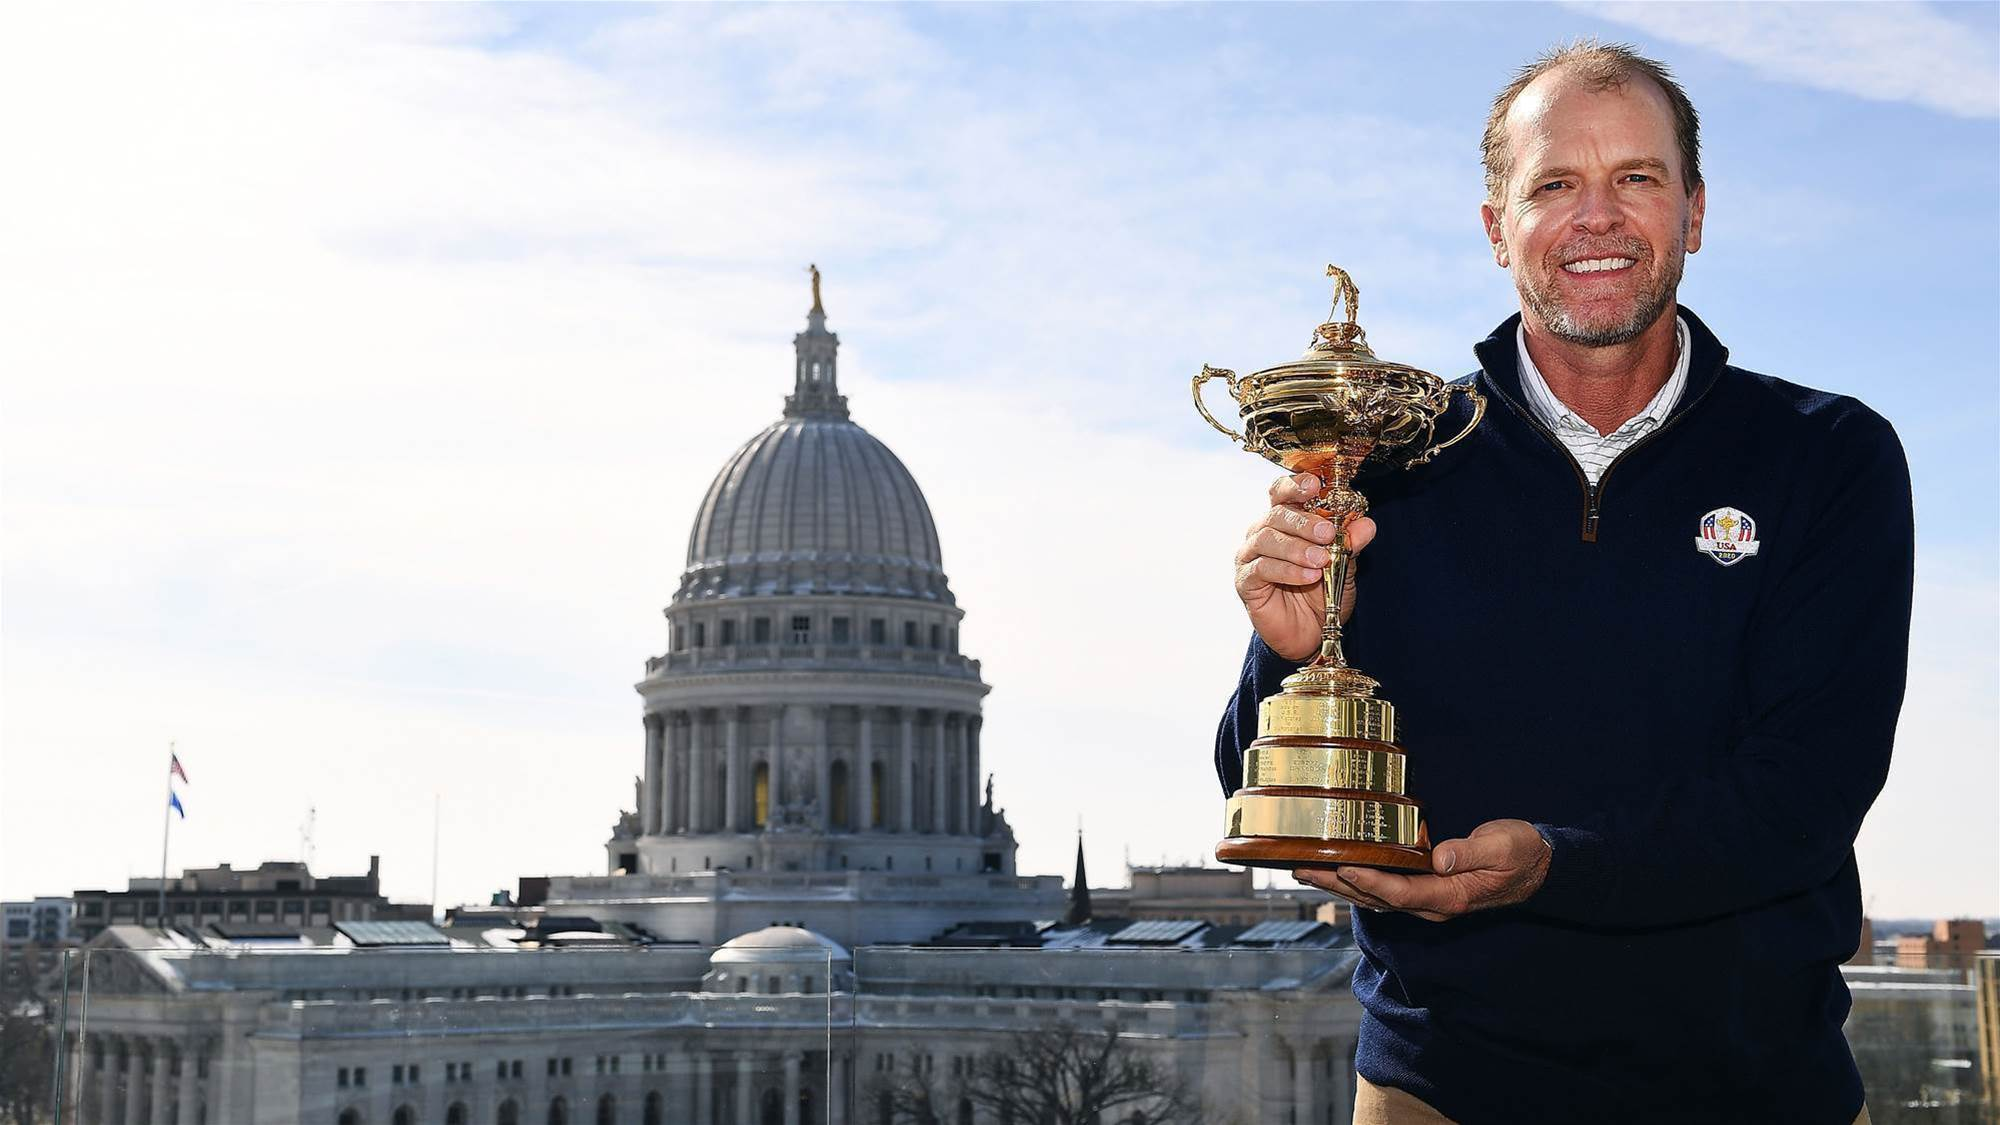 Stricker named 2020 US Ryder Cup captain